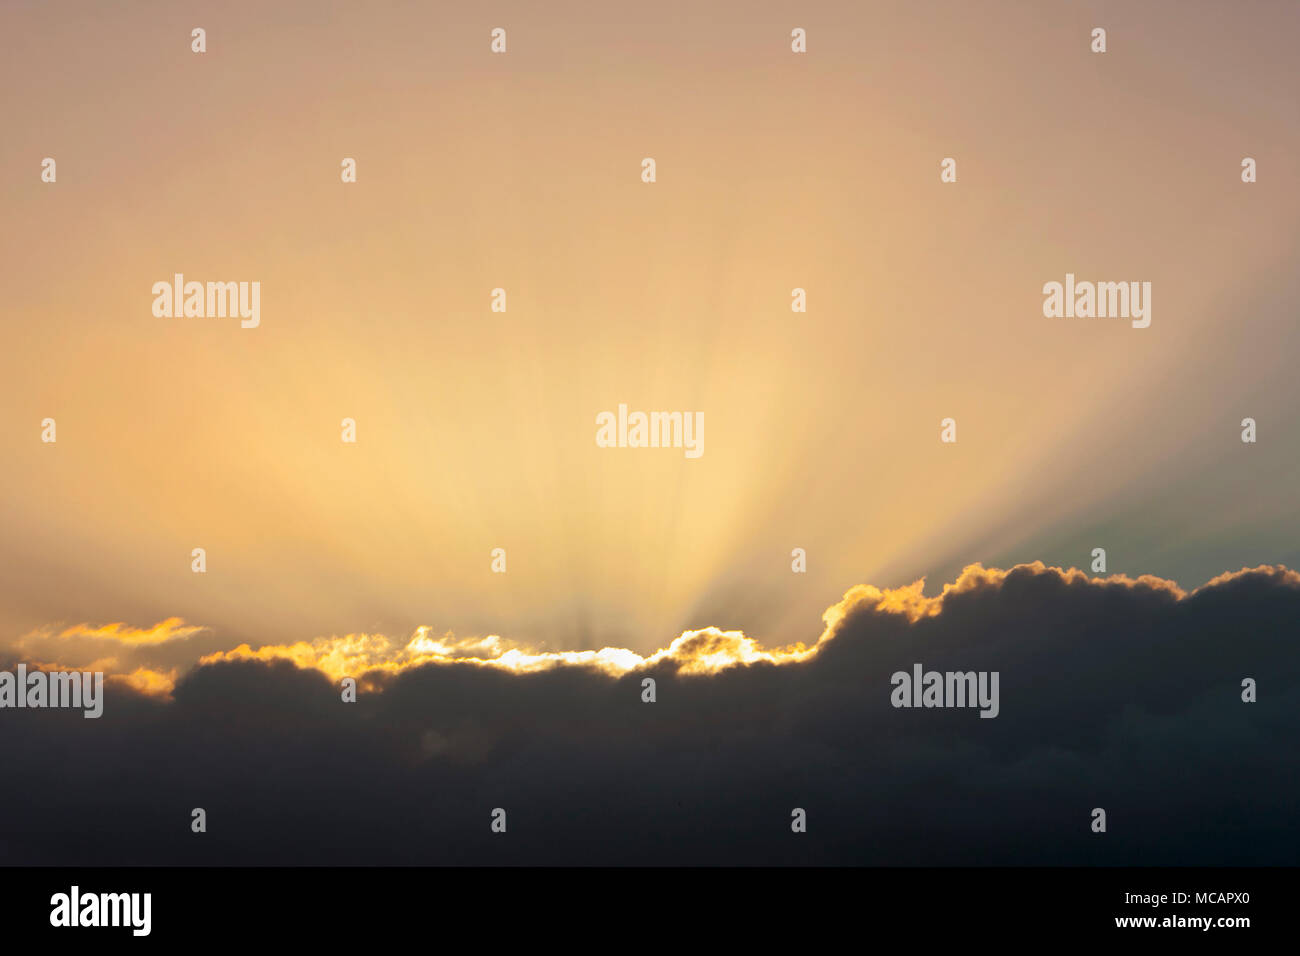 Golden sun beams emerging from behind a dark cloud at sunset - Stock Image